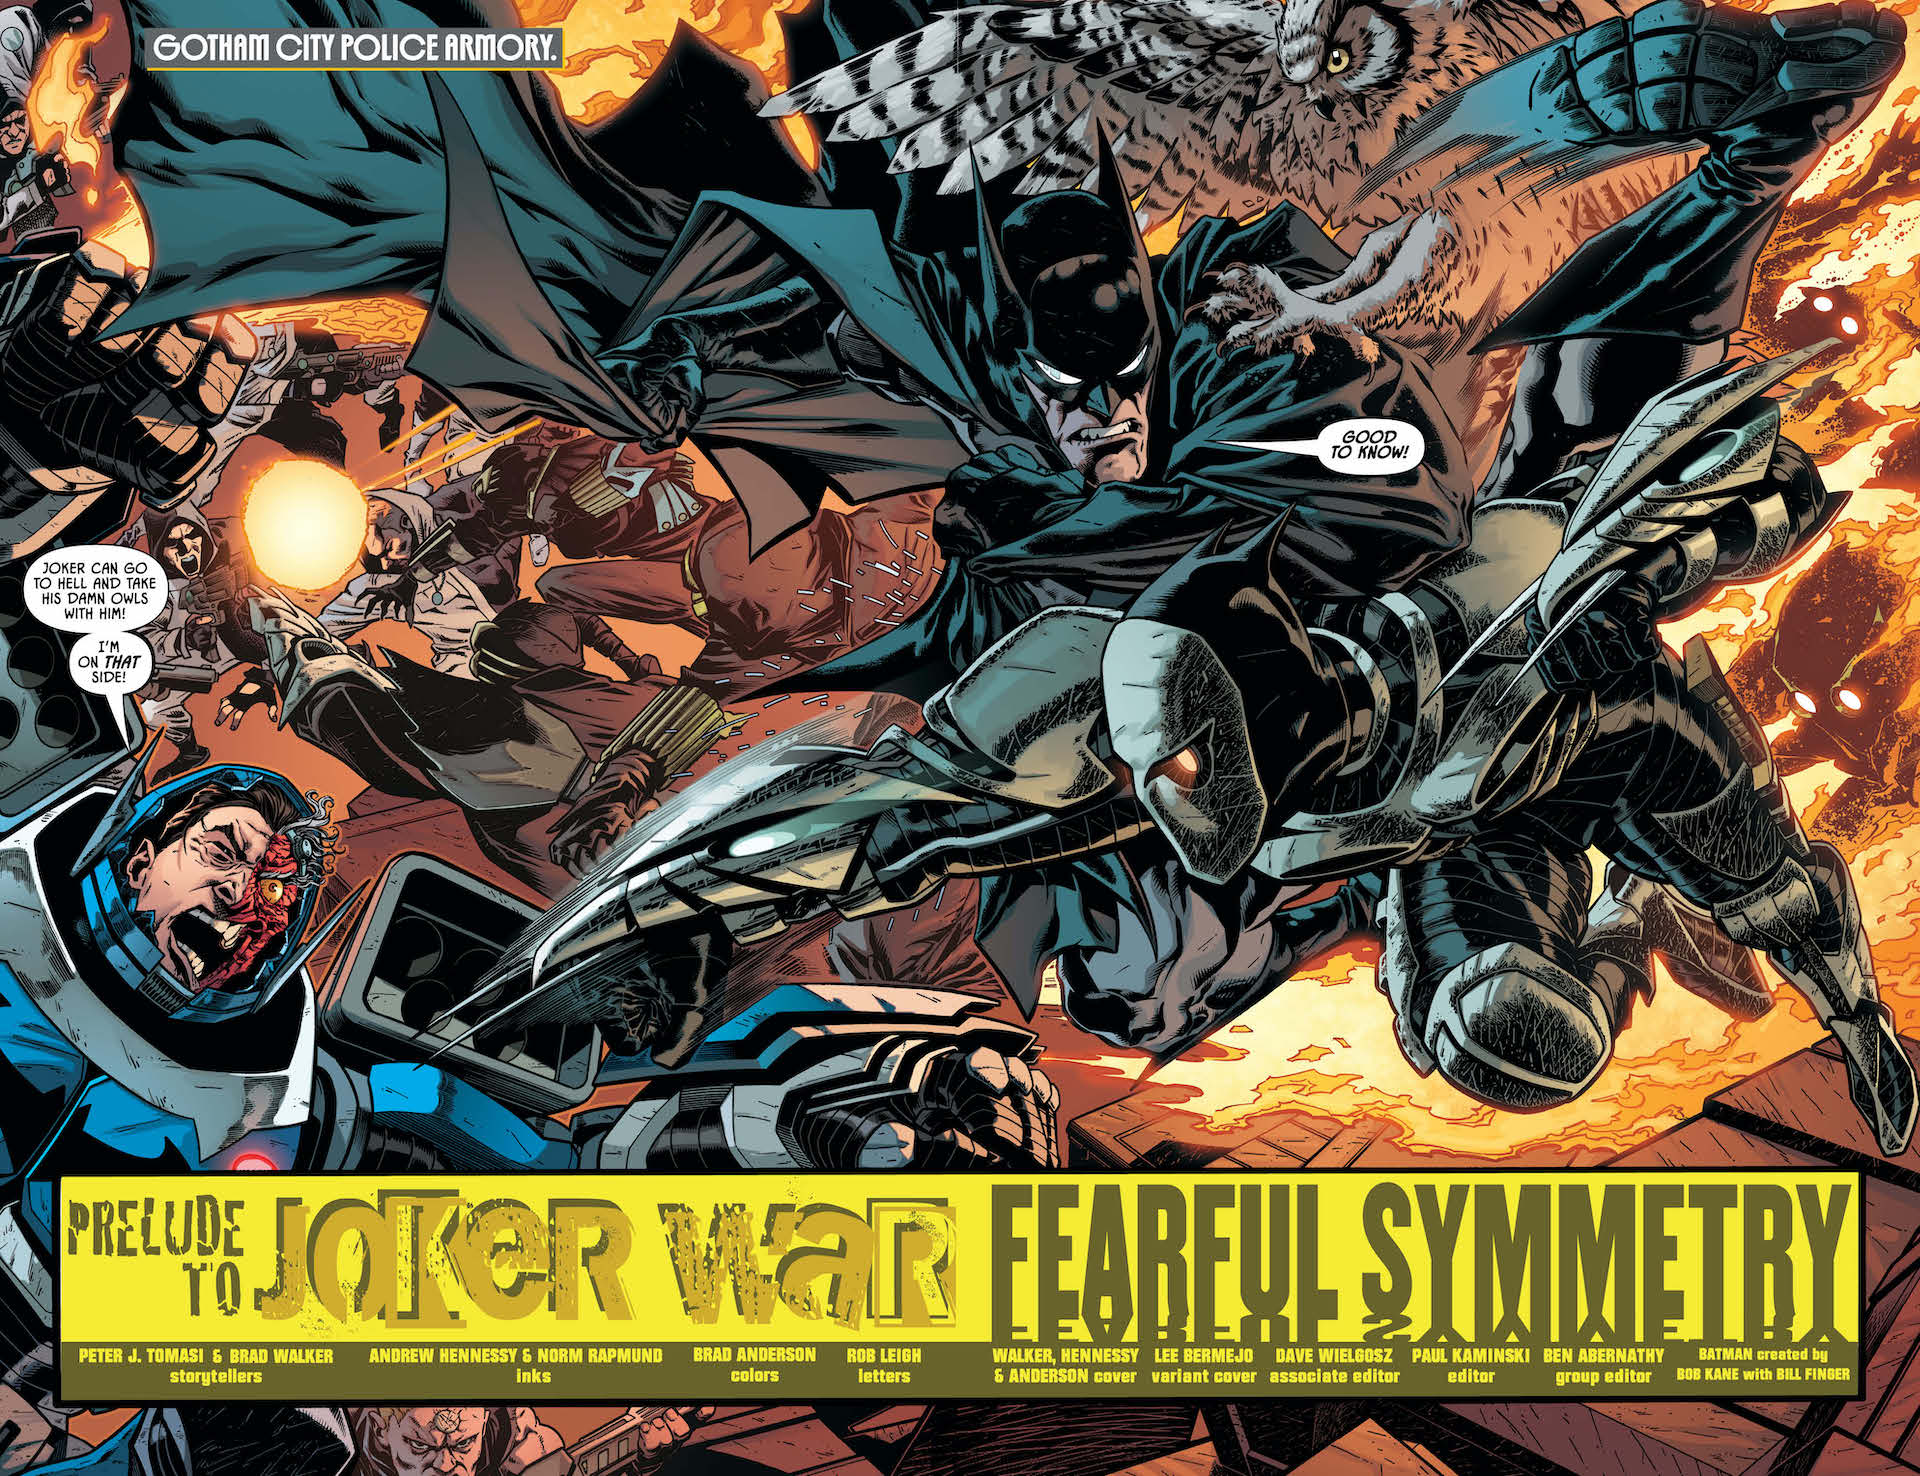 The prelude to Joker War continues in Detective Comics #1024!